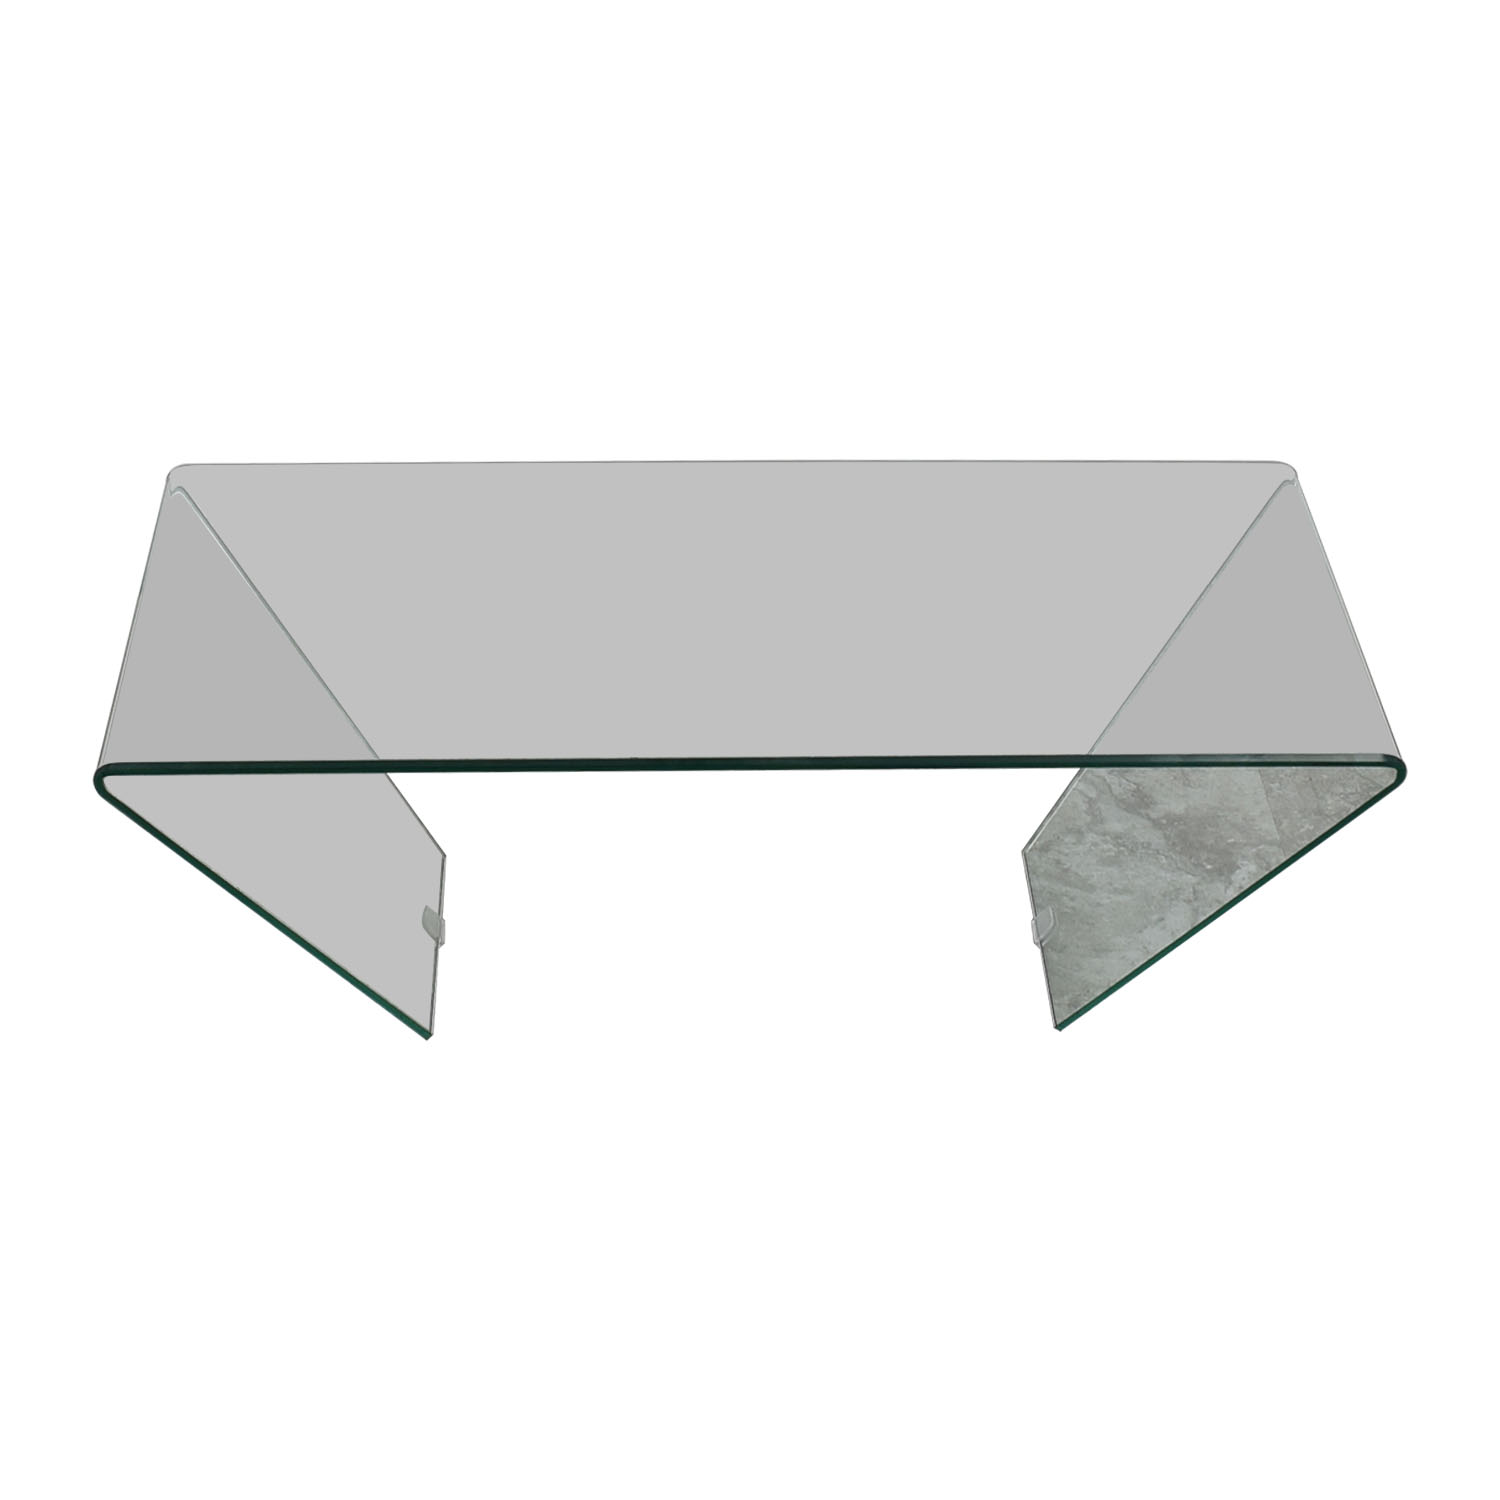 J & M Furniture Bent Clear Glass Coffee Table / Tables